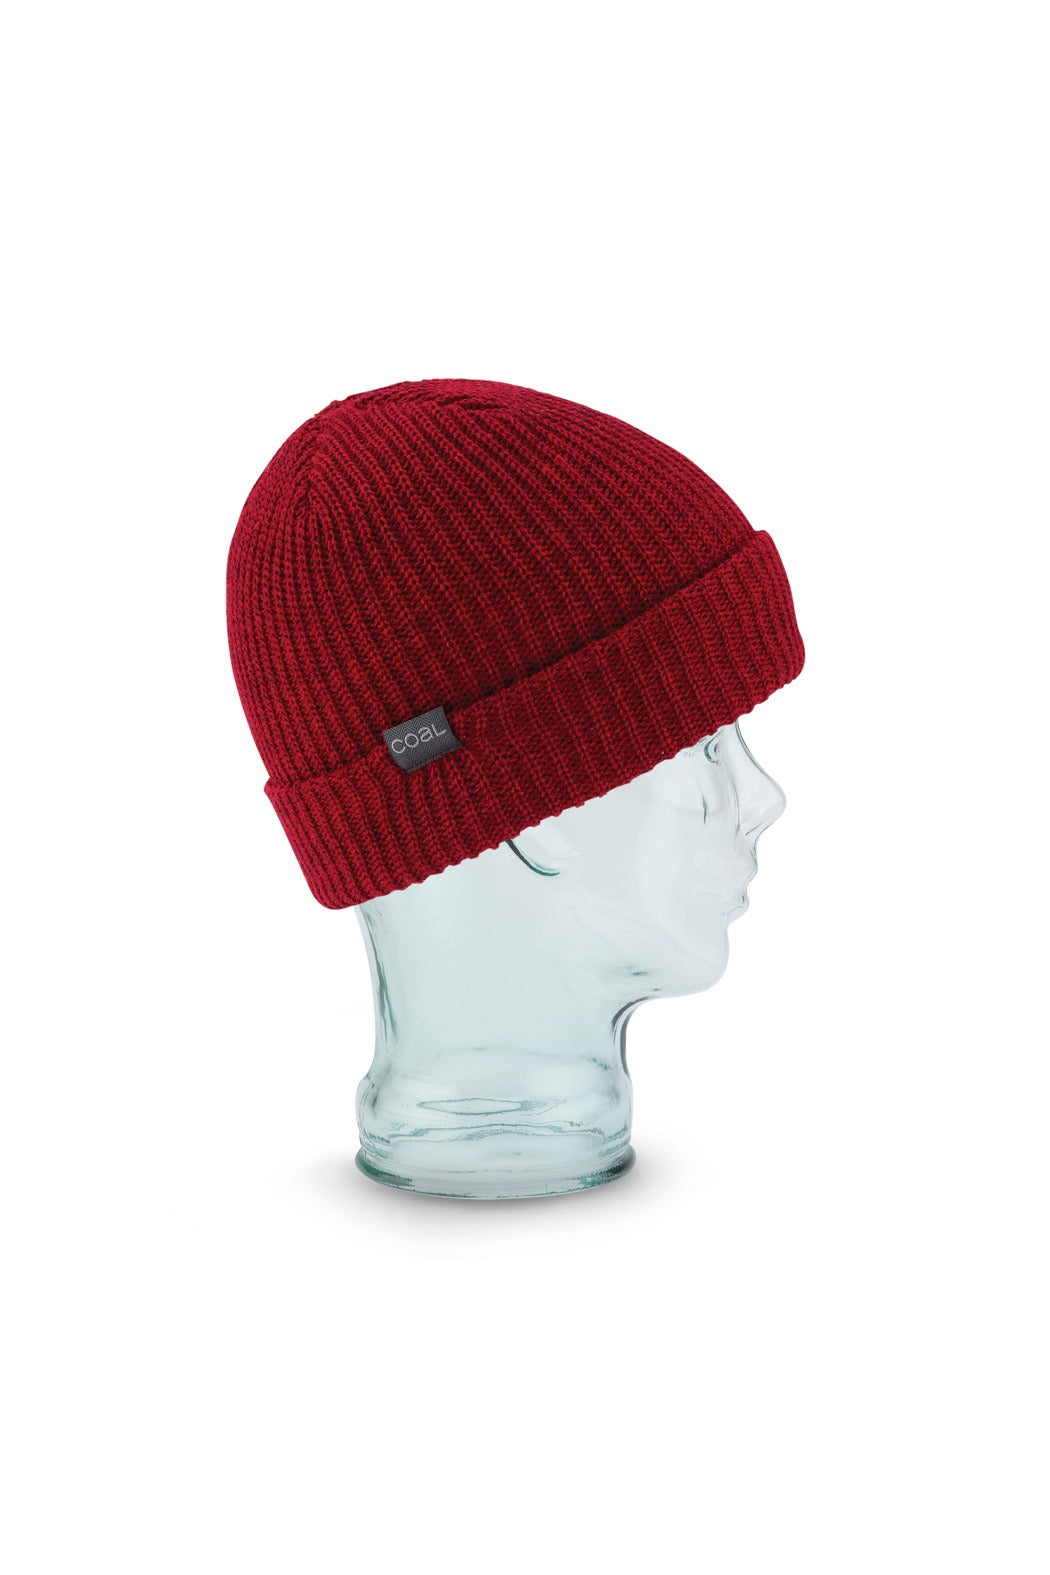 38ecd7d8e7c Coal Stanley Beanie in Heather Dark Red – Queen of Hearts and Modern Love